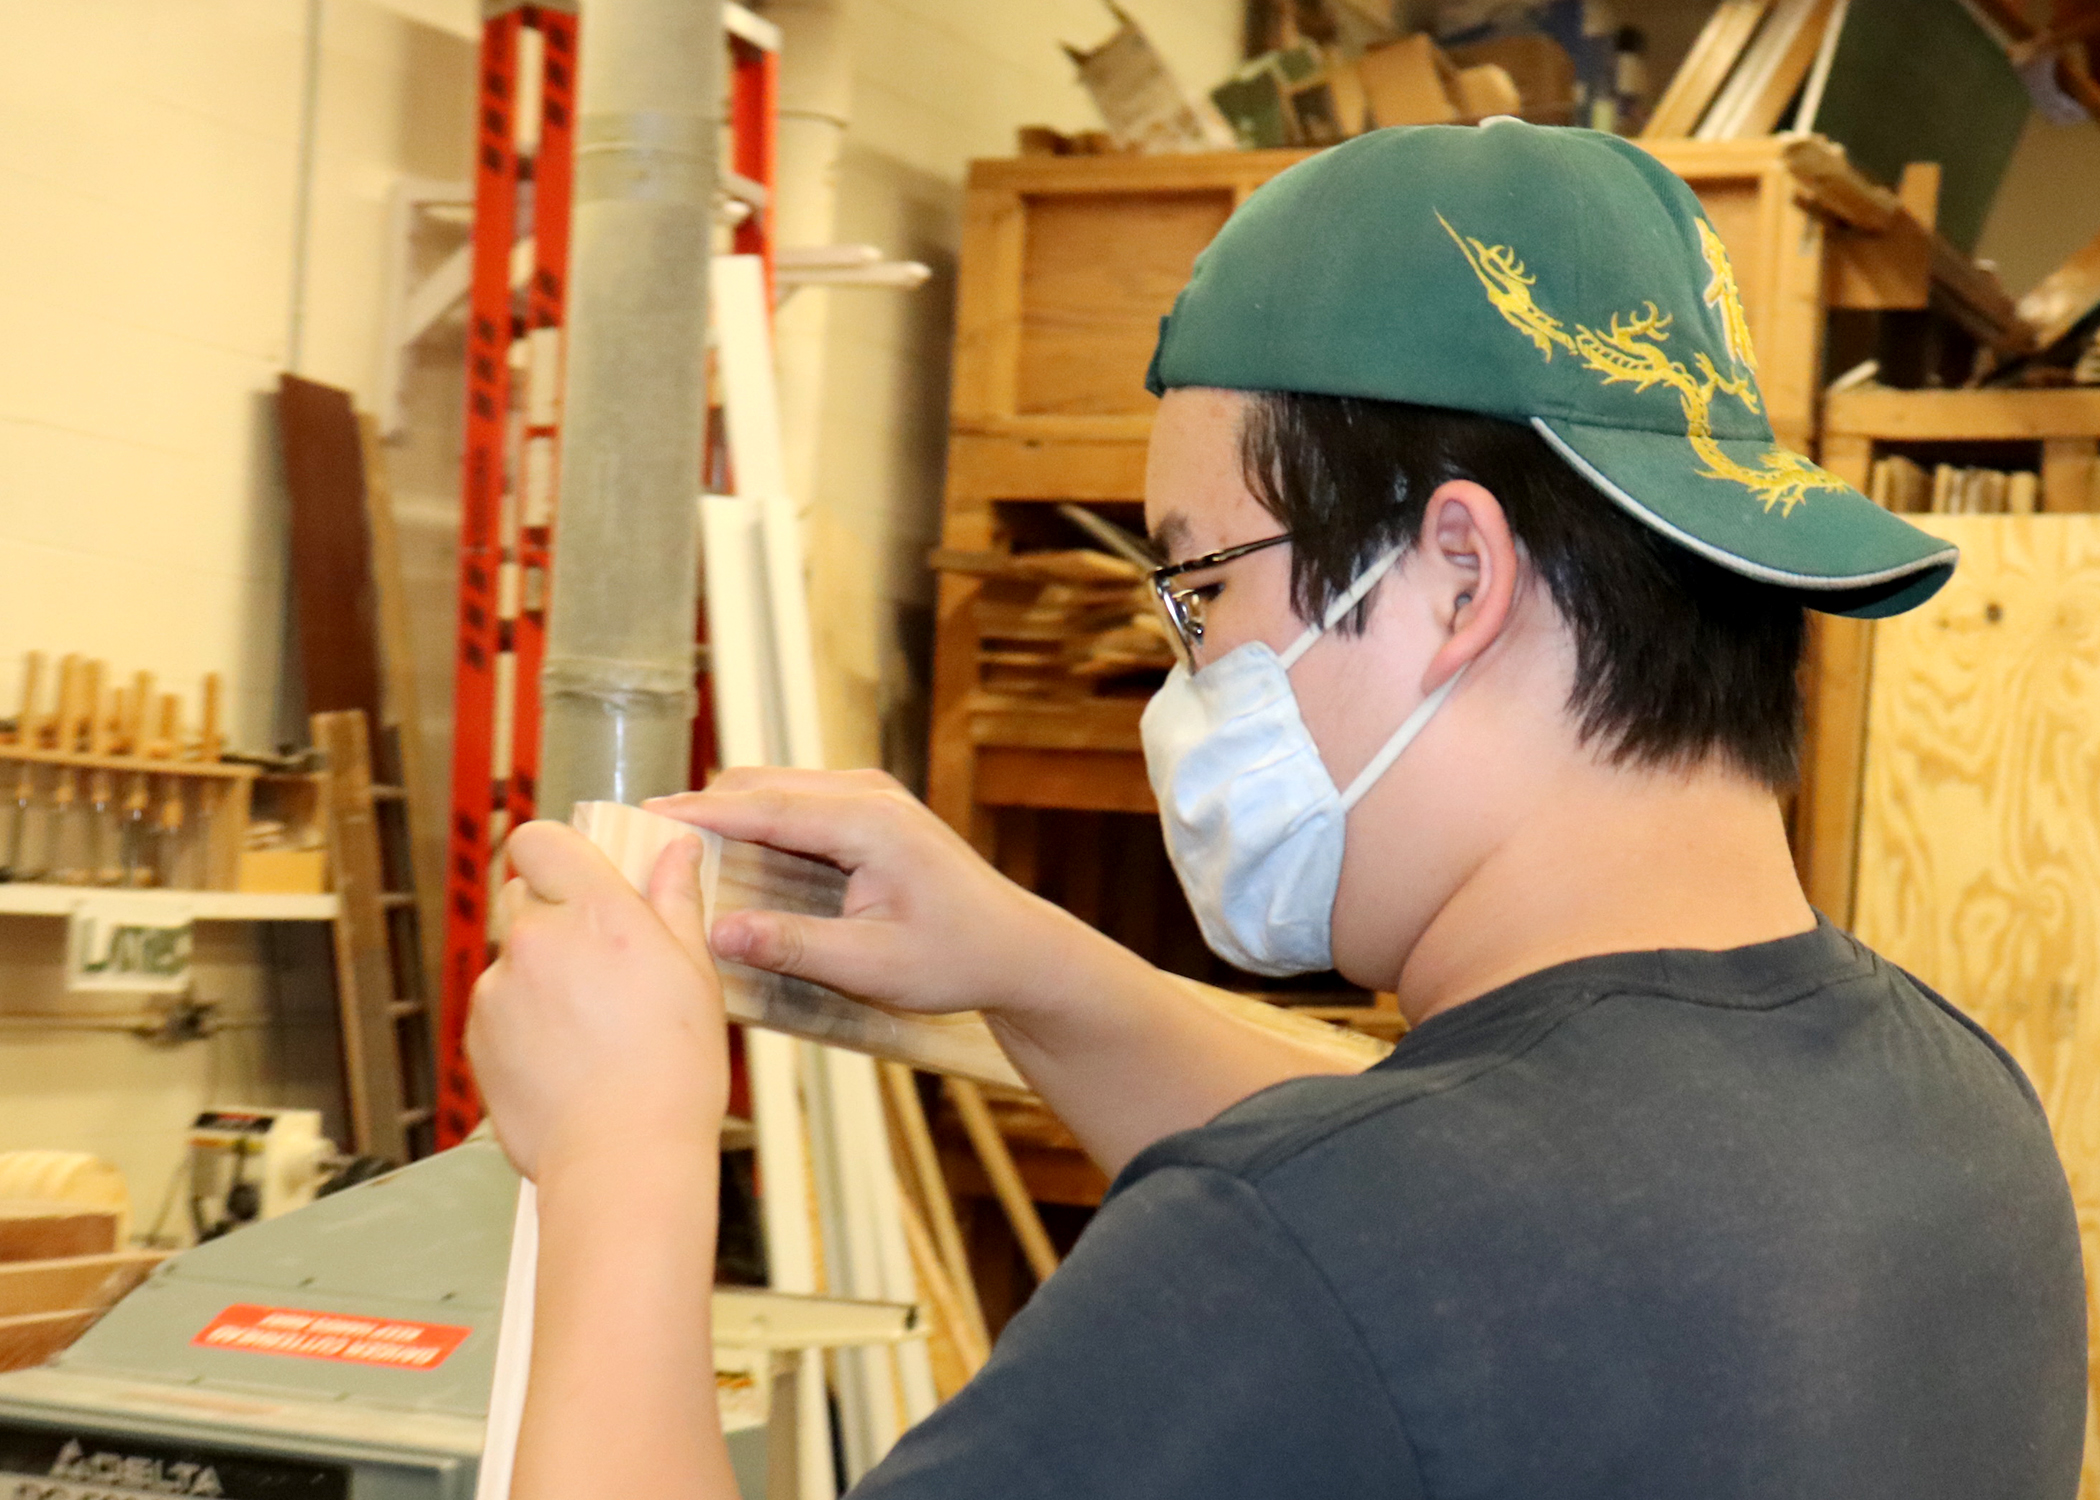 students works on a carpentry project